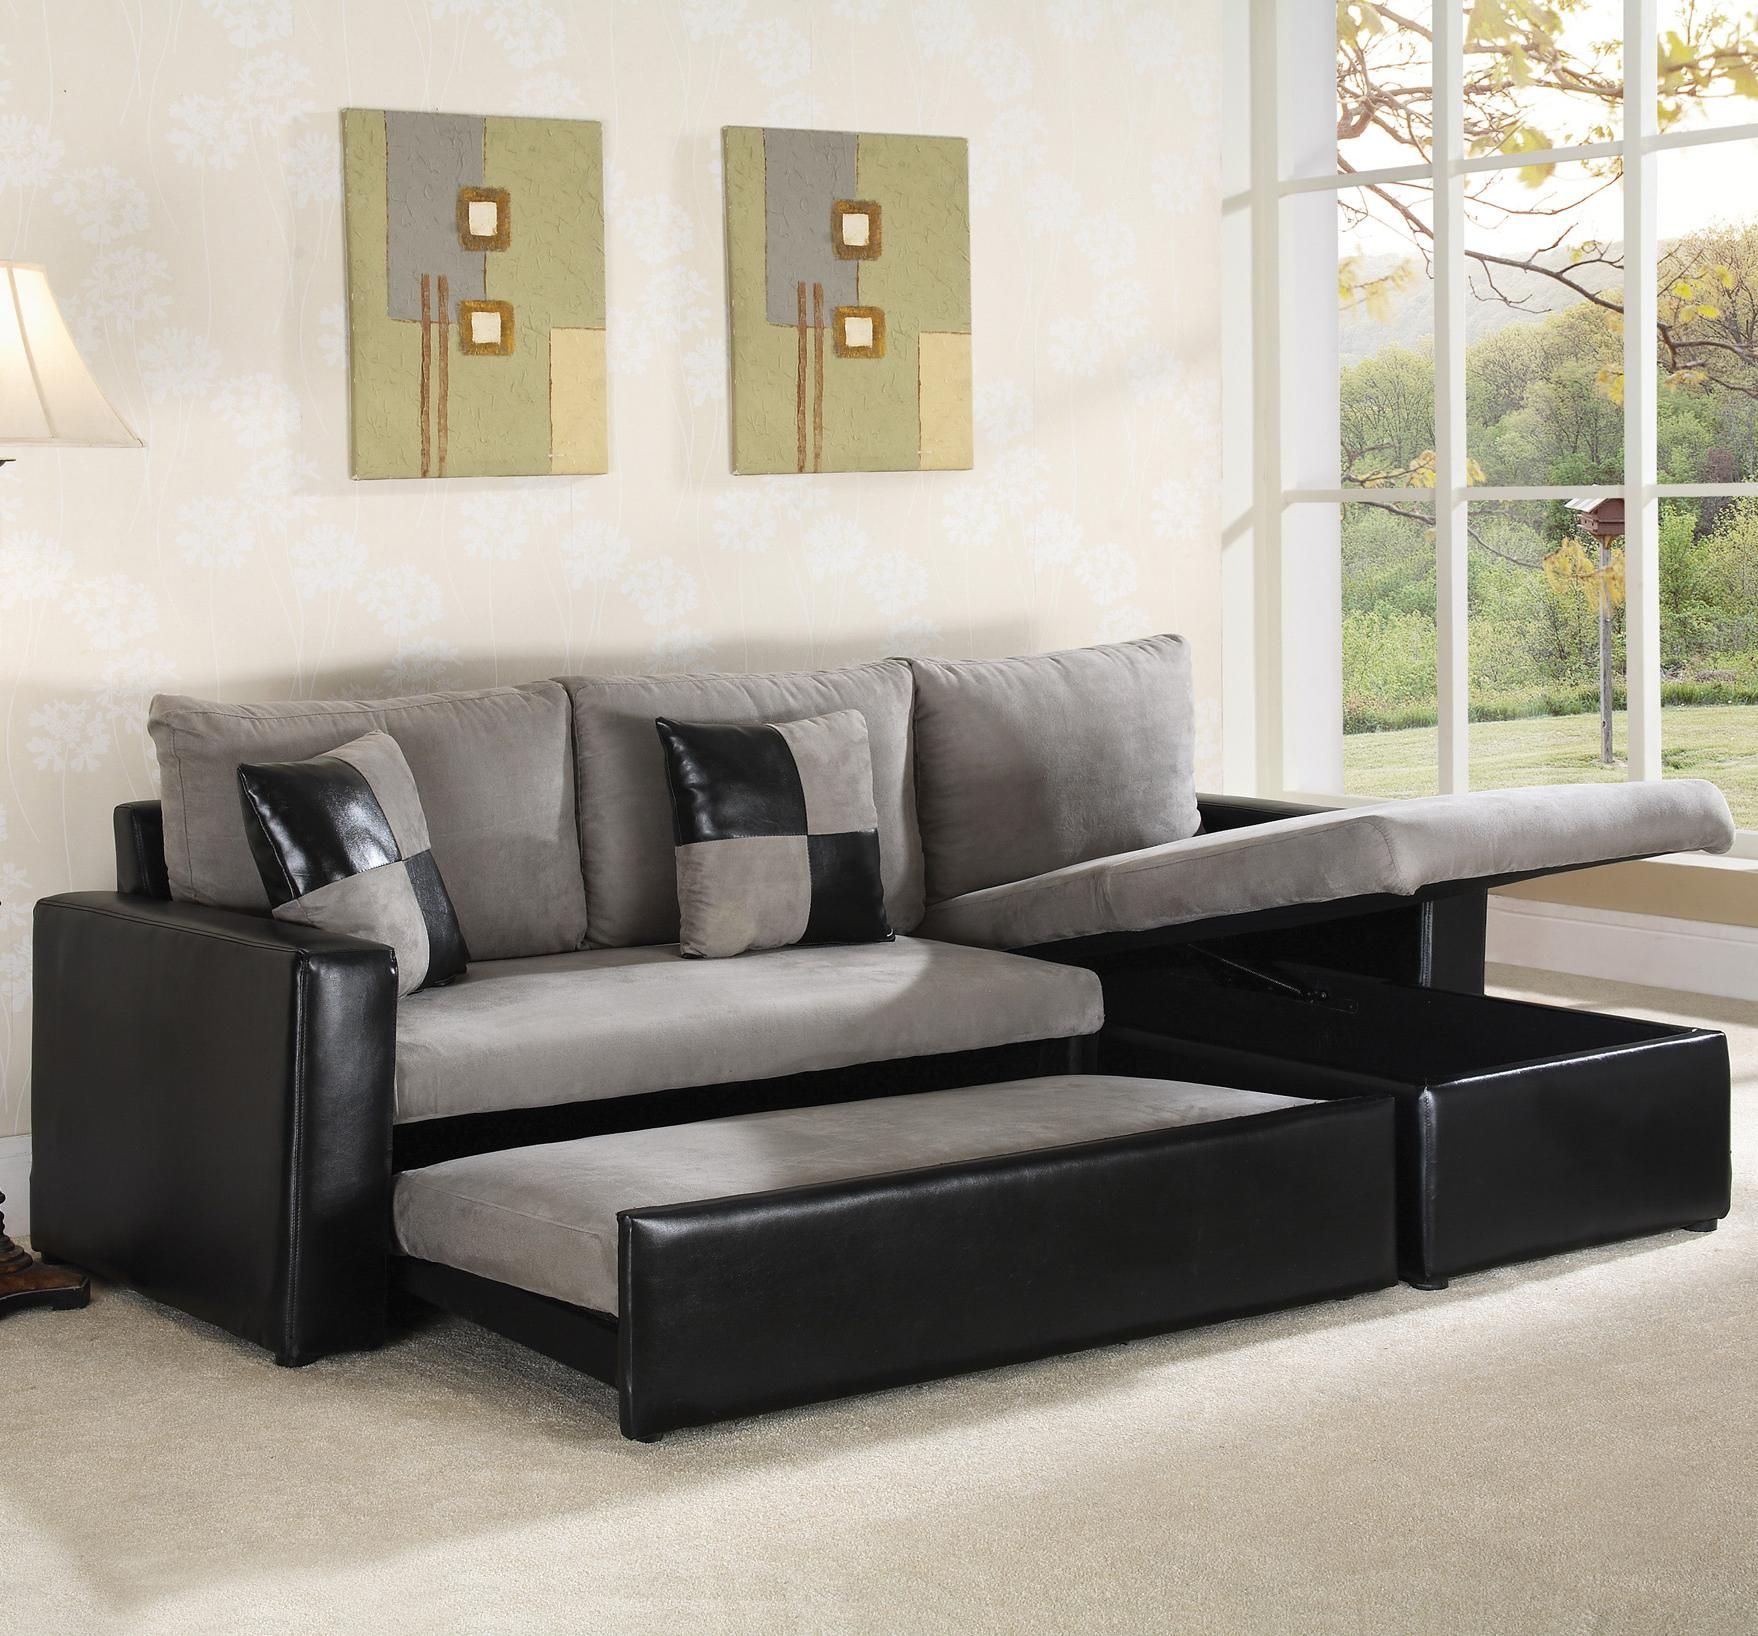 Cool Sectional Couches. 64008 Sectional Sofa Sleeper By World Imports Cool  Couches I